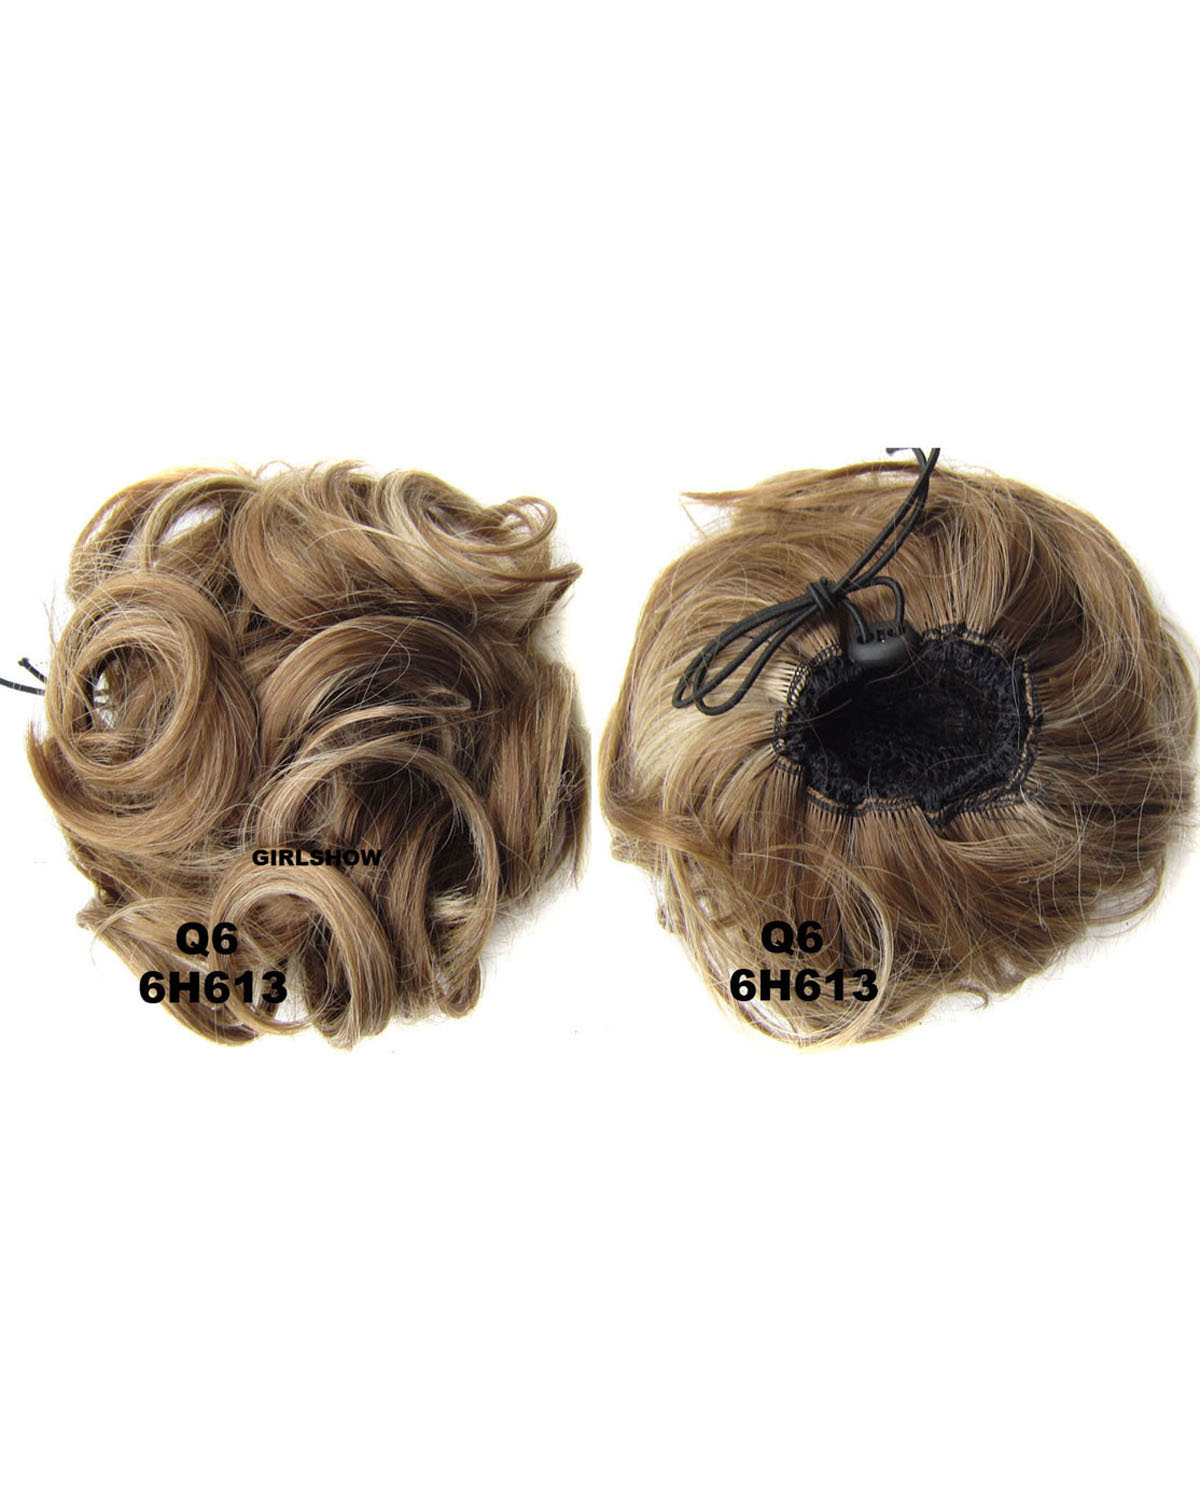 Ladies Clean and Bright Curly and Short Hair Buns Drawstring Synthetic Hair Extension Bride Scrunchies 6H613